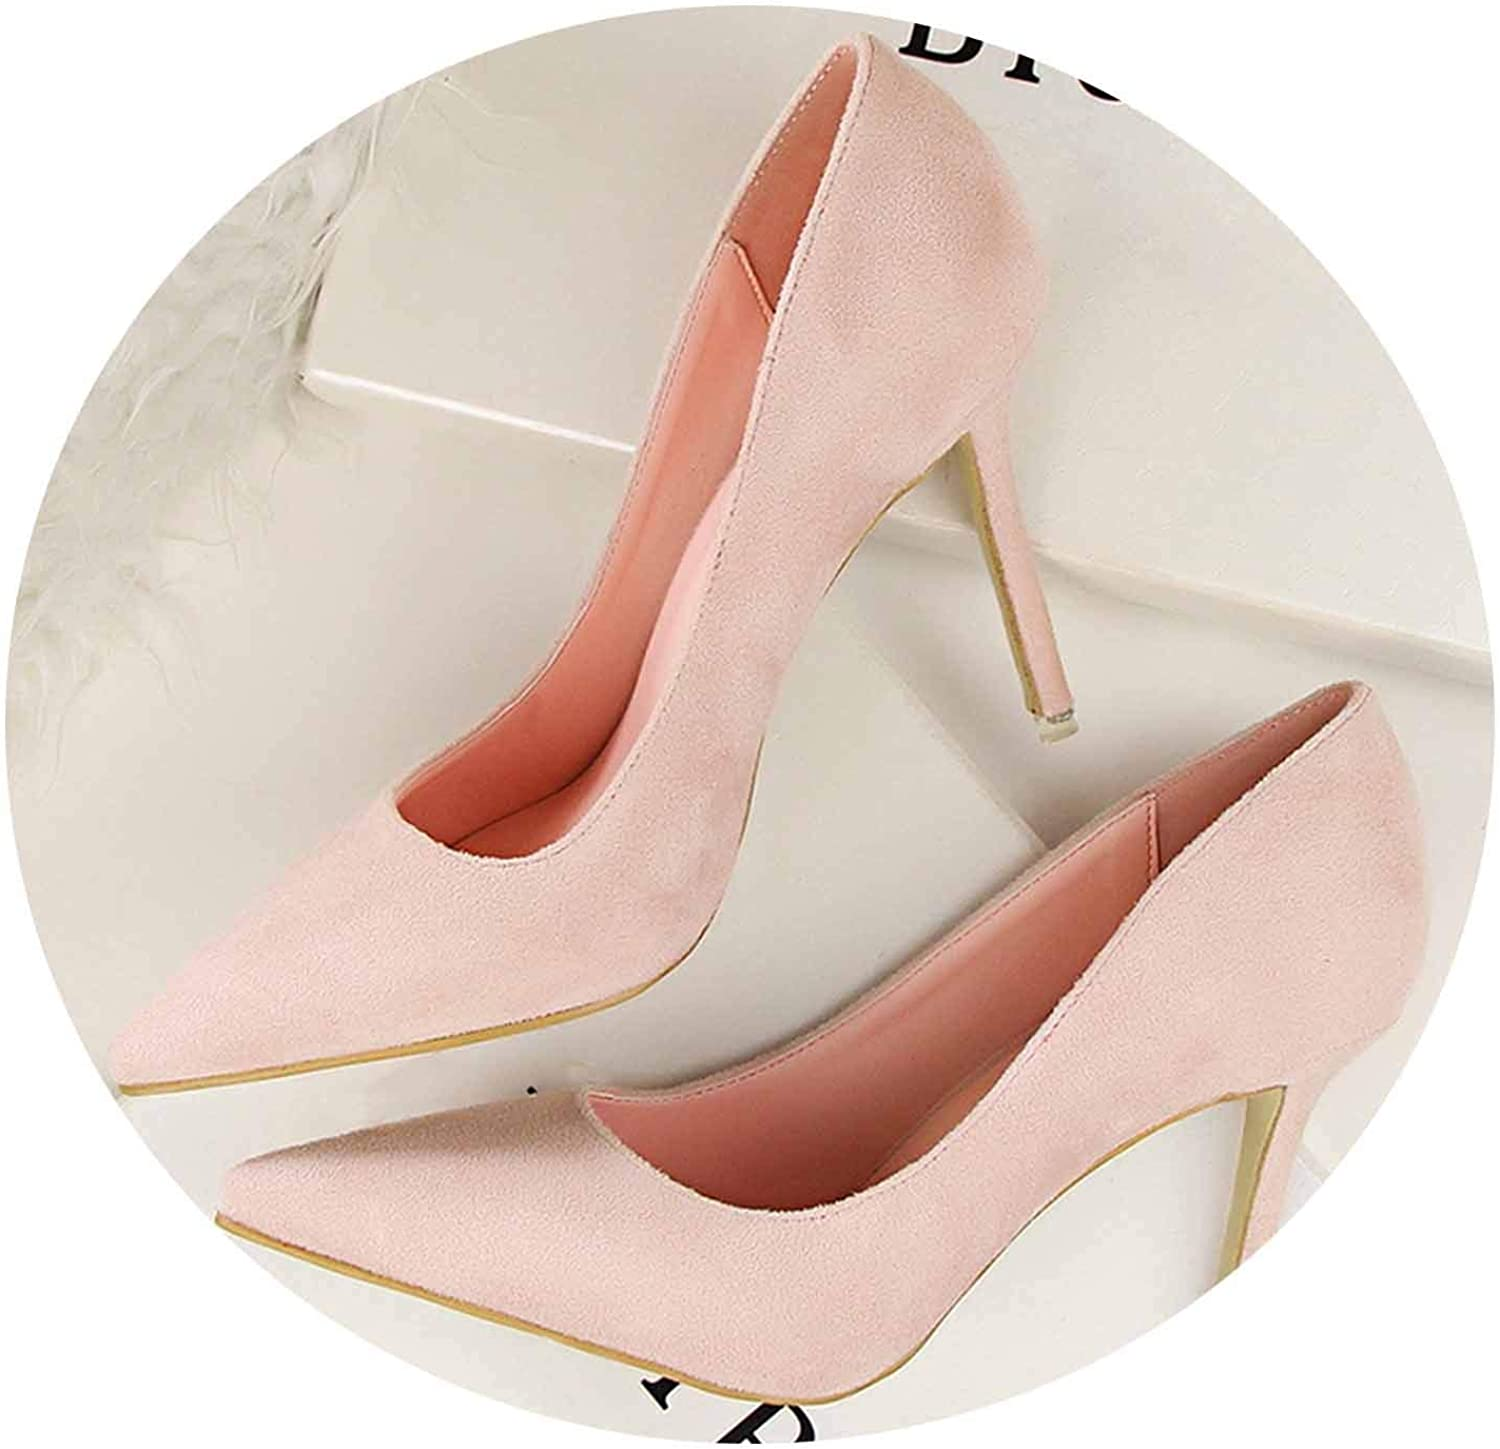 Women Pumps 9cm High Heels for Women shoes Casual Pointed Toe Women Heels shoes